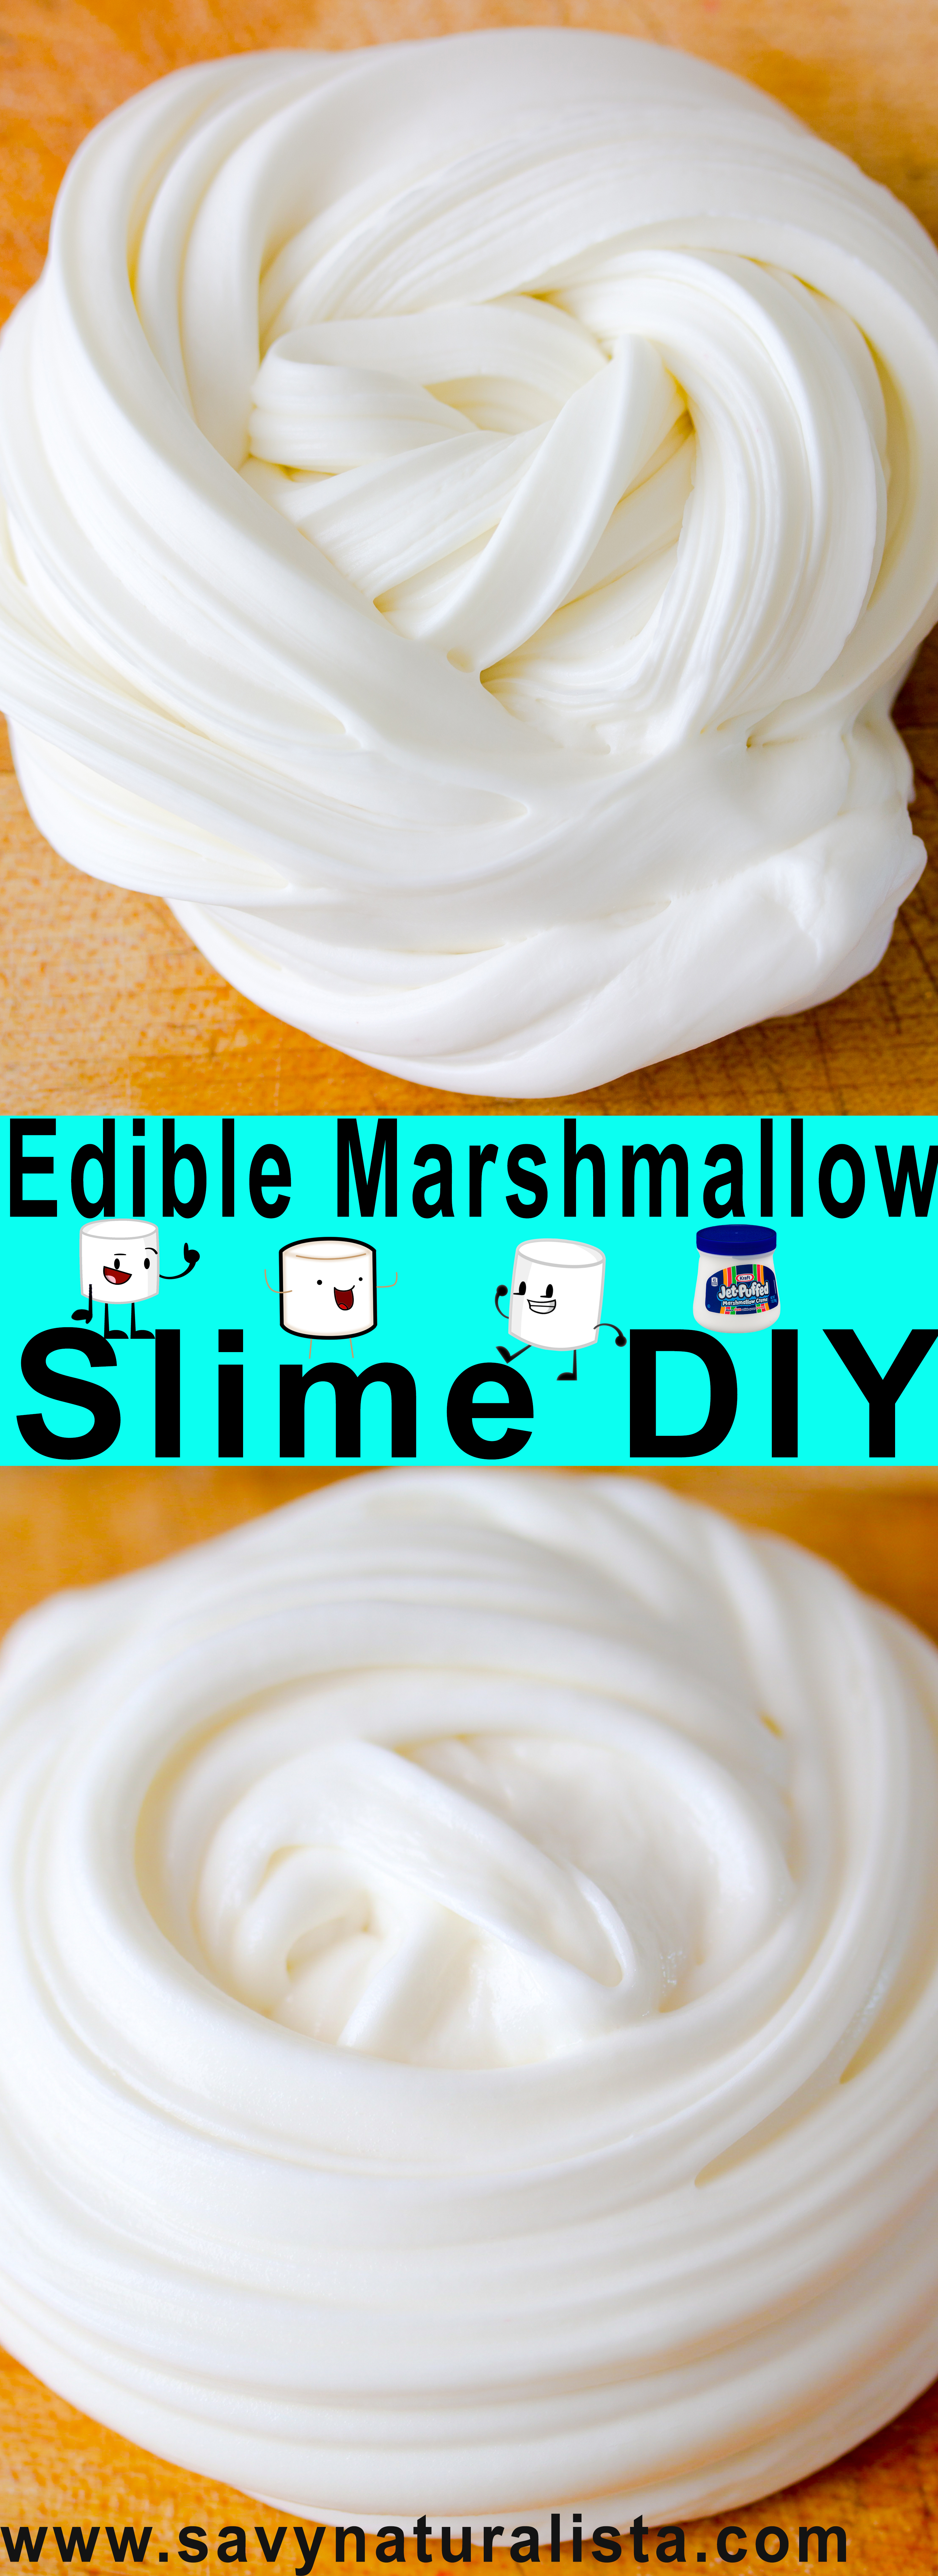 How to make edible marshmallow slime without cornstarch